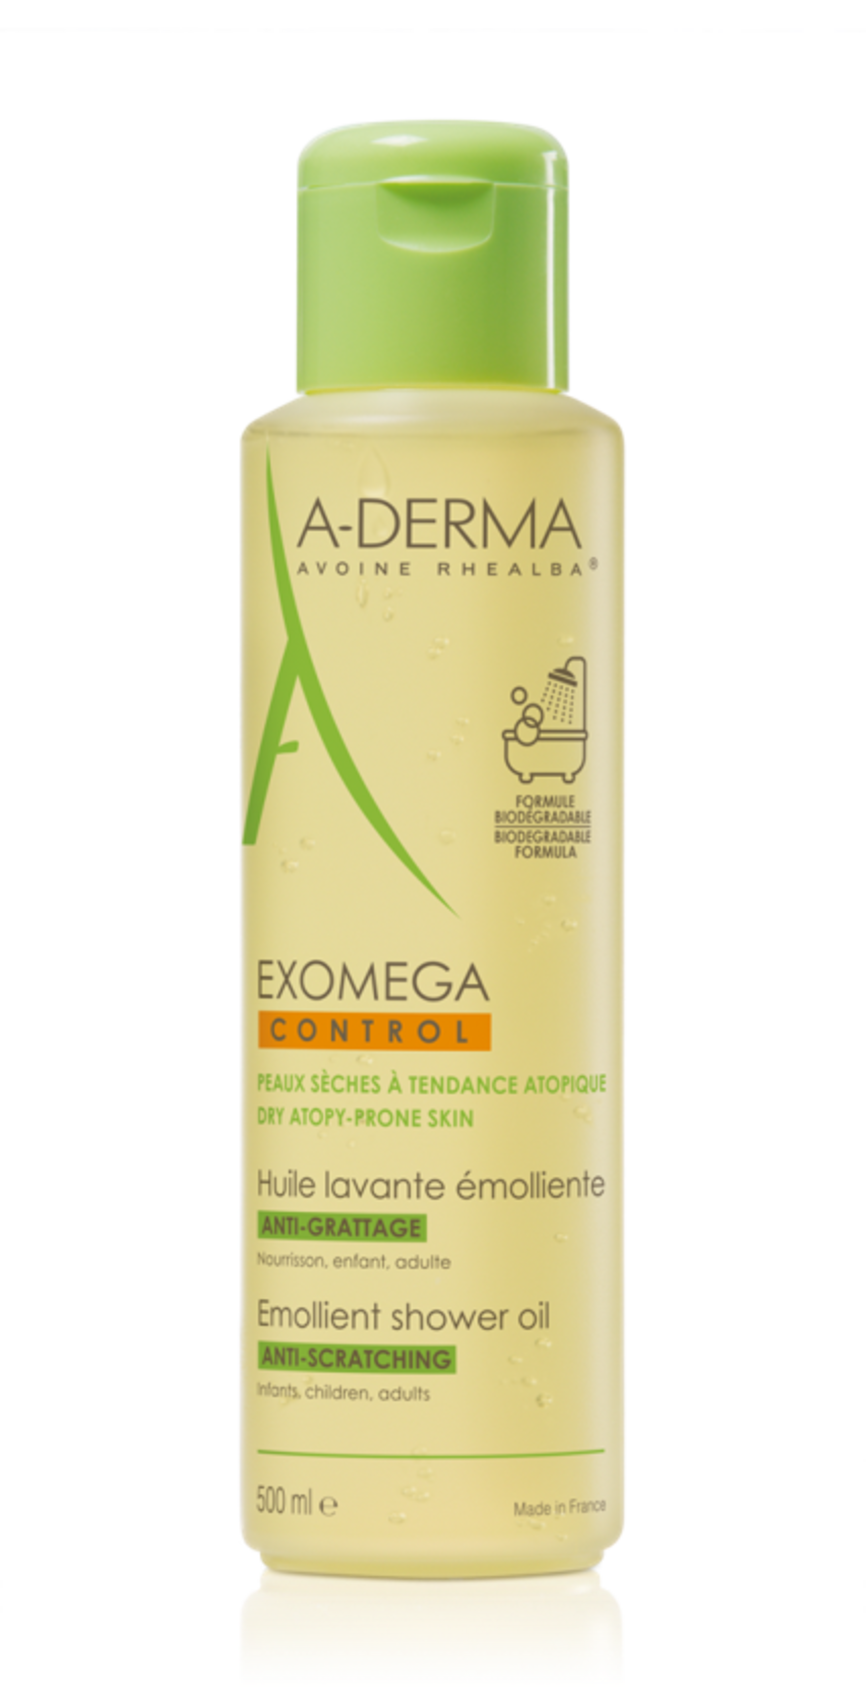 A-Derma exomega control shower oil (500 ml)